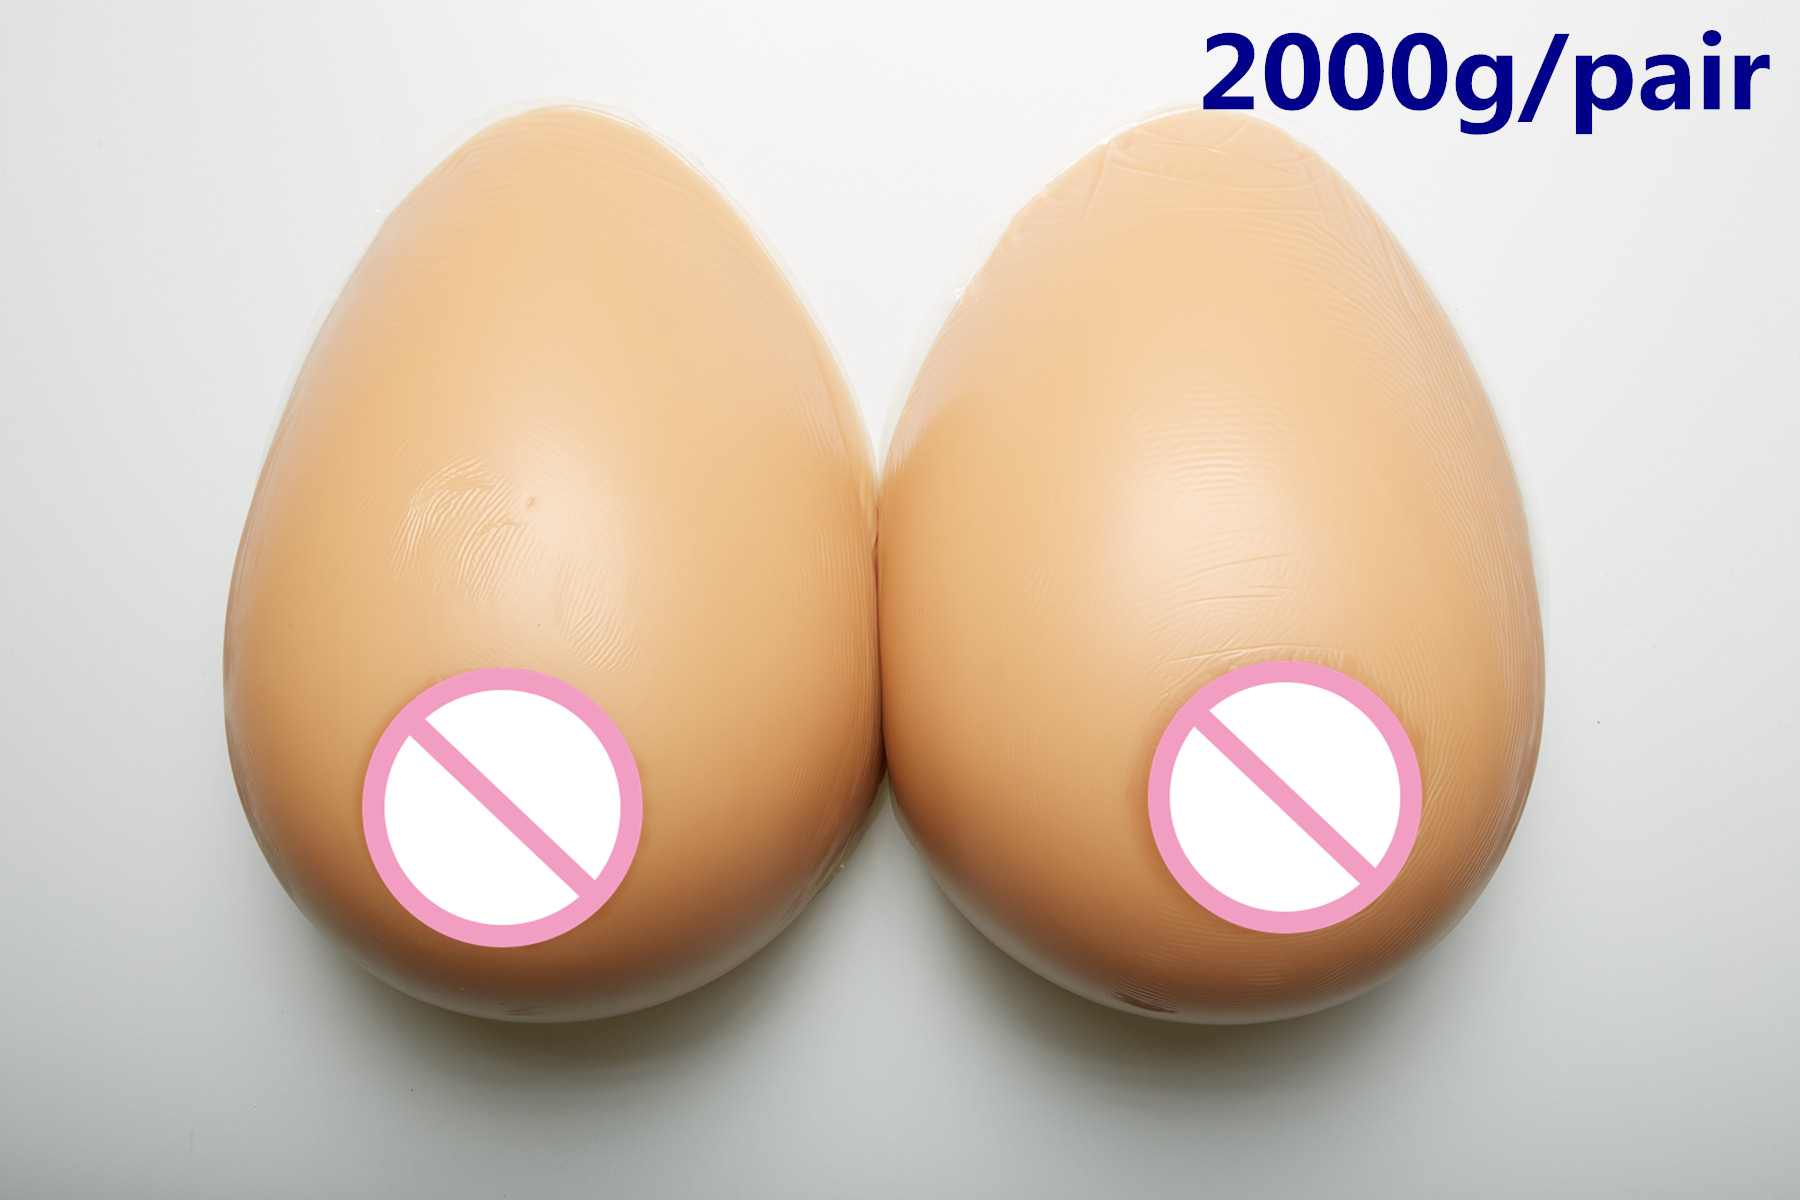 Fake Boob 2000g/pair Brown Silicone Breast Forms Breast Prosthesis Crossdresser Drag Queen Shemale Transgender False Breasts 2000g pair h i cup super huge heavy breast fake silicone breast forms for shemale transgender crossdresser breasts enlargement